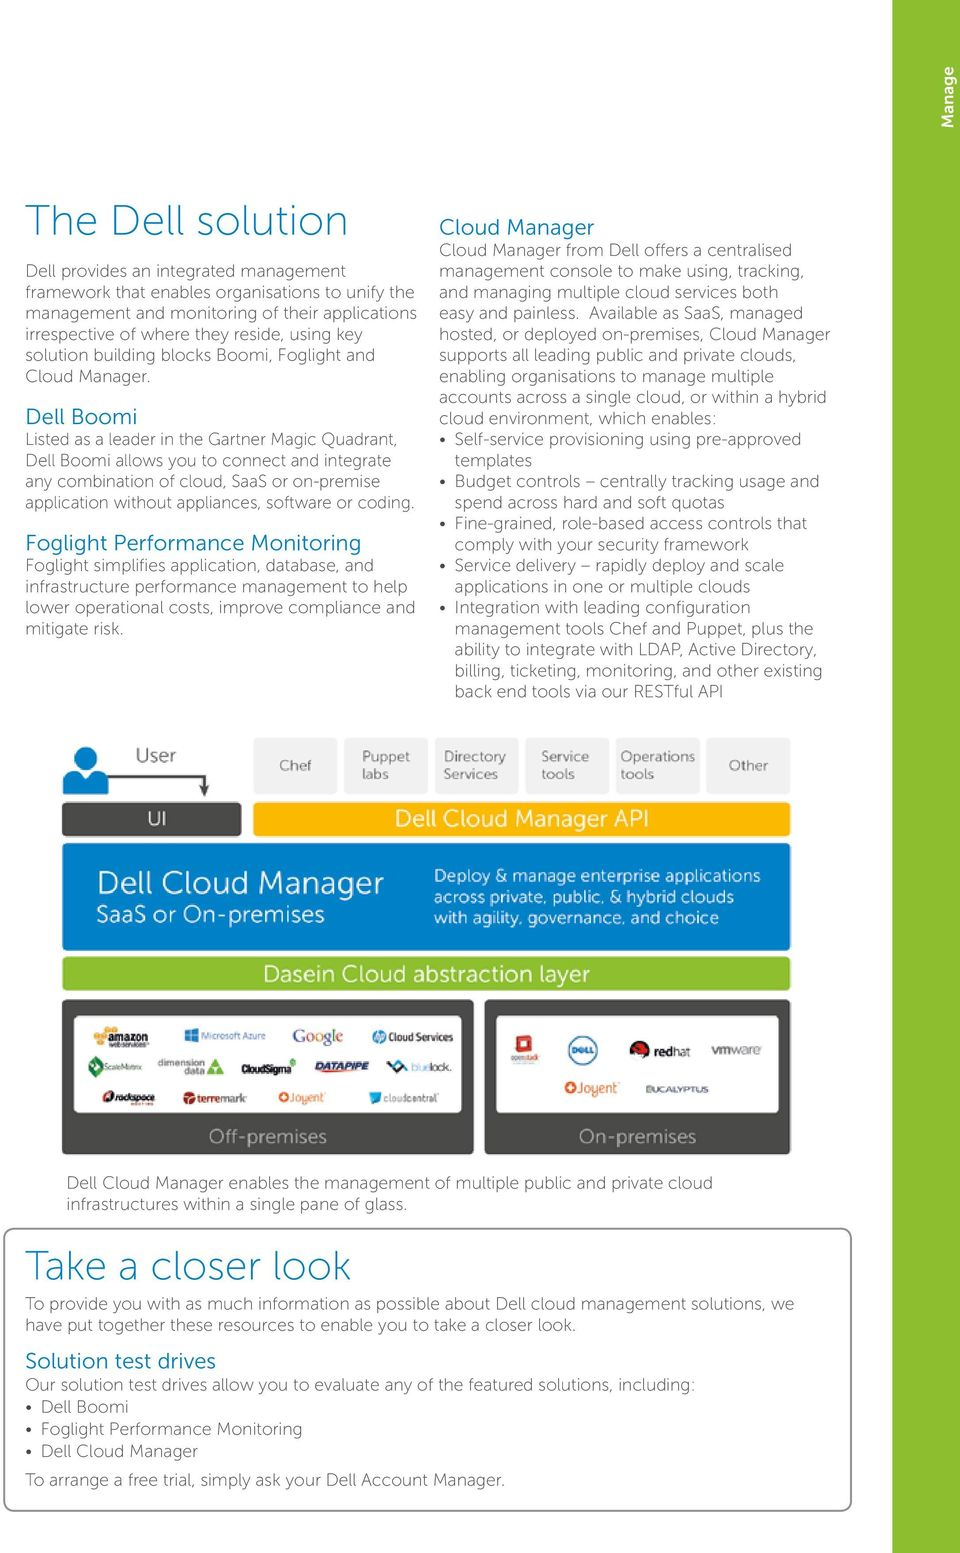 Dell Boomi Listed as a leader in the Gartner Magic Quadrant, Dell Boomi allows you to connect and integrate any combination of cloud, SaaS or on-premise application without appliances, software or